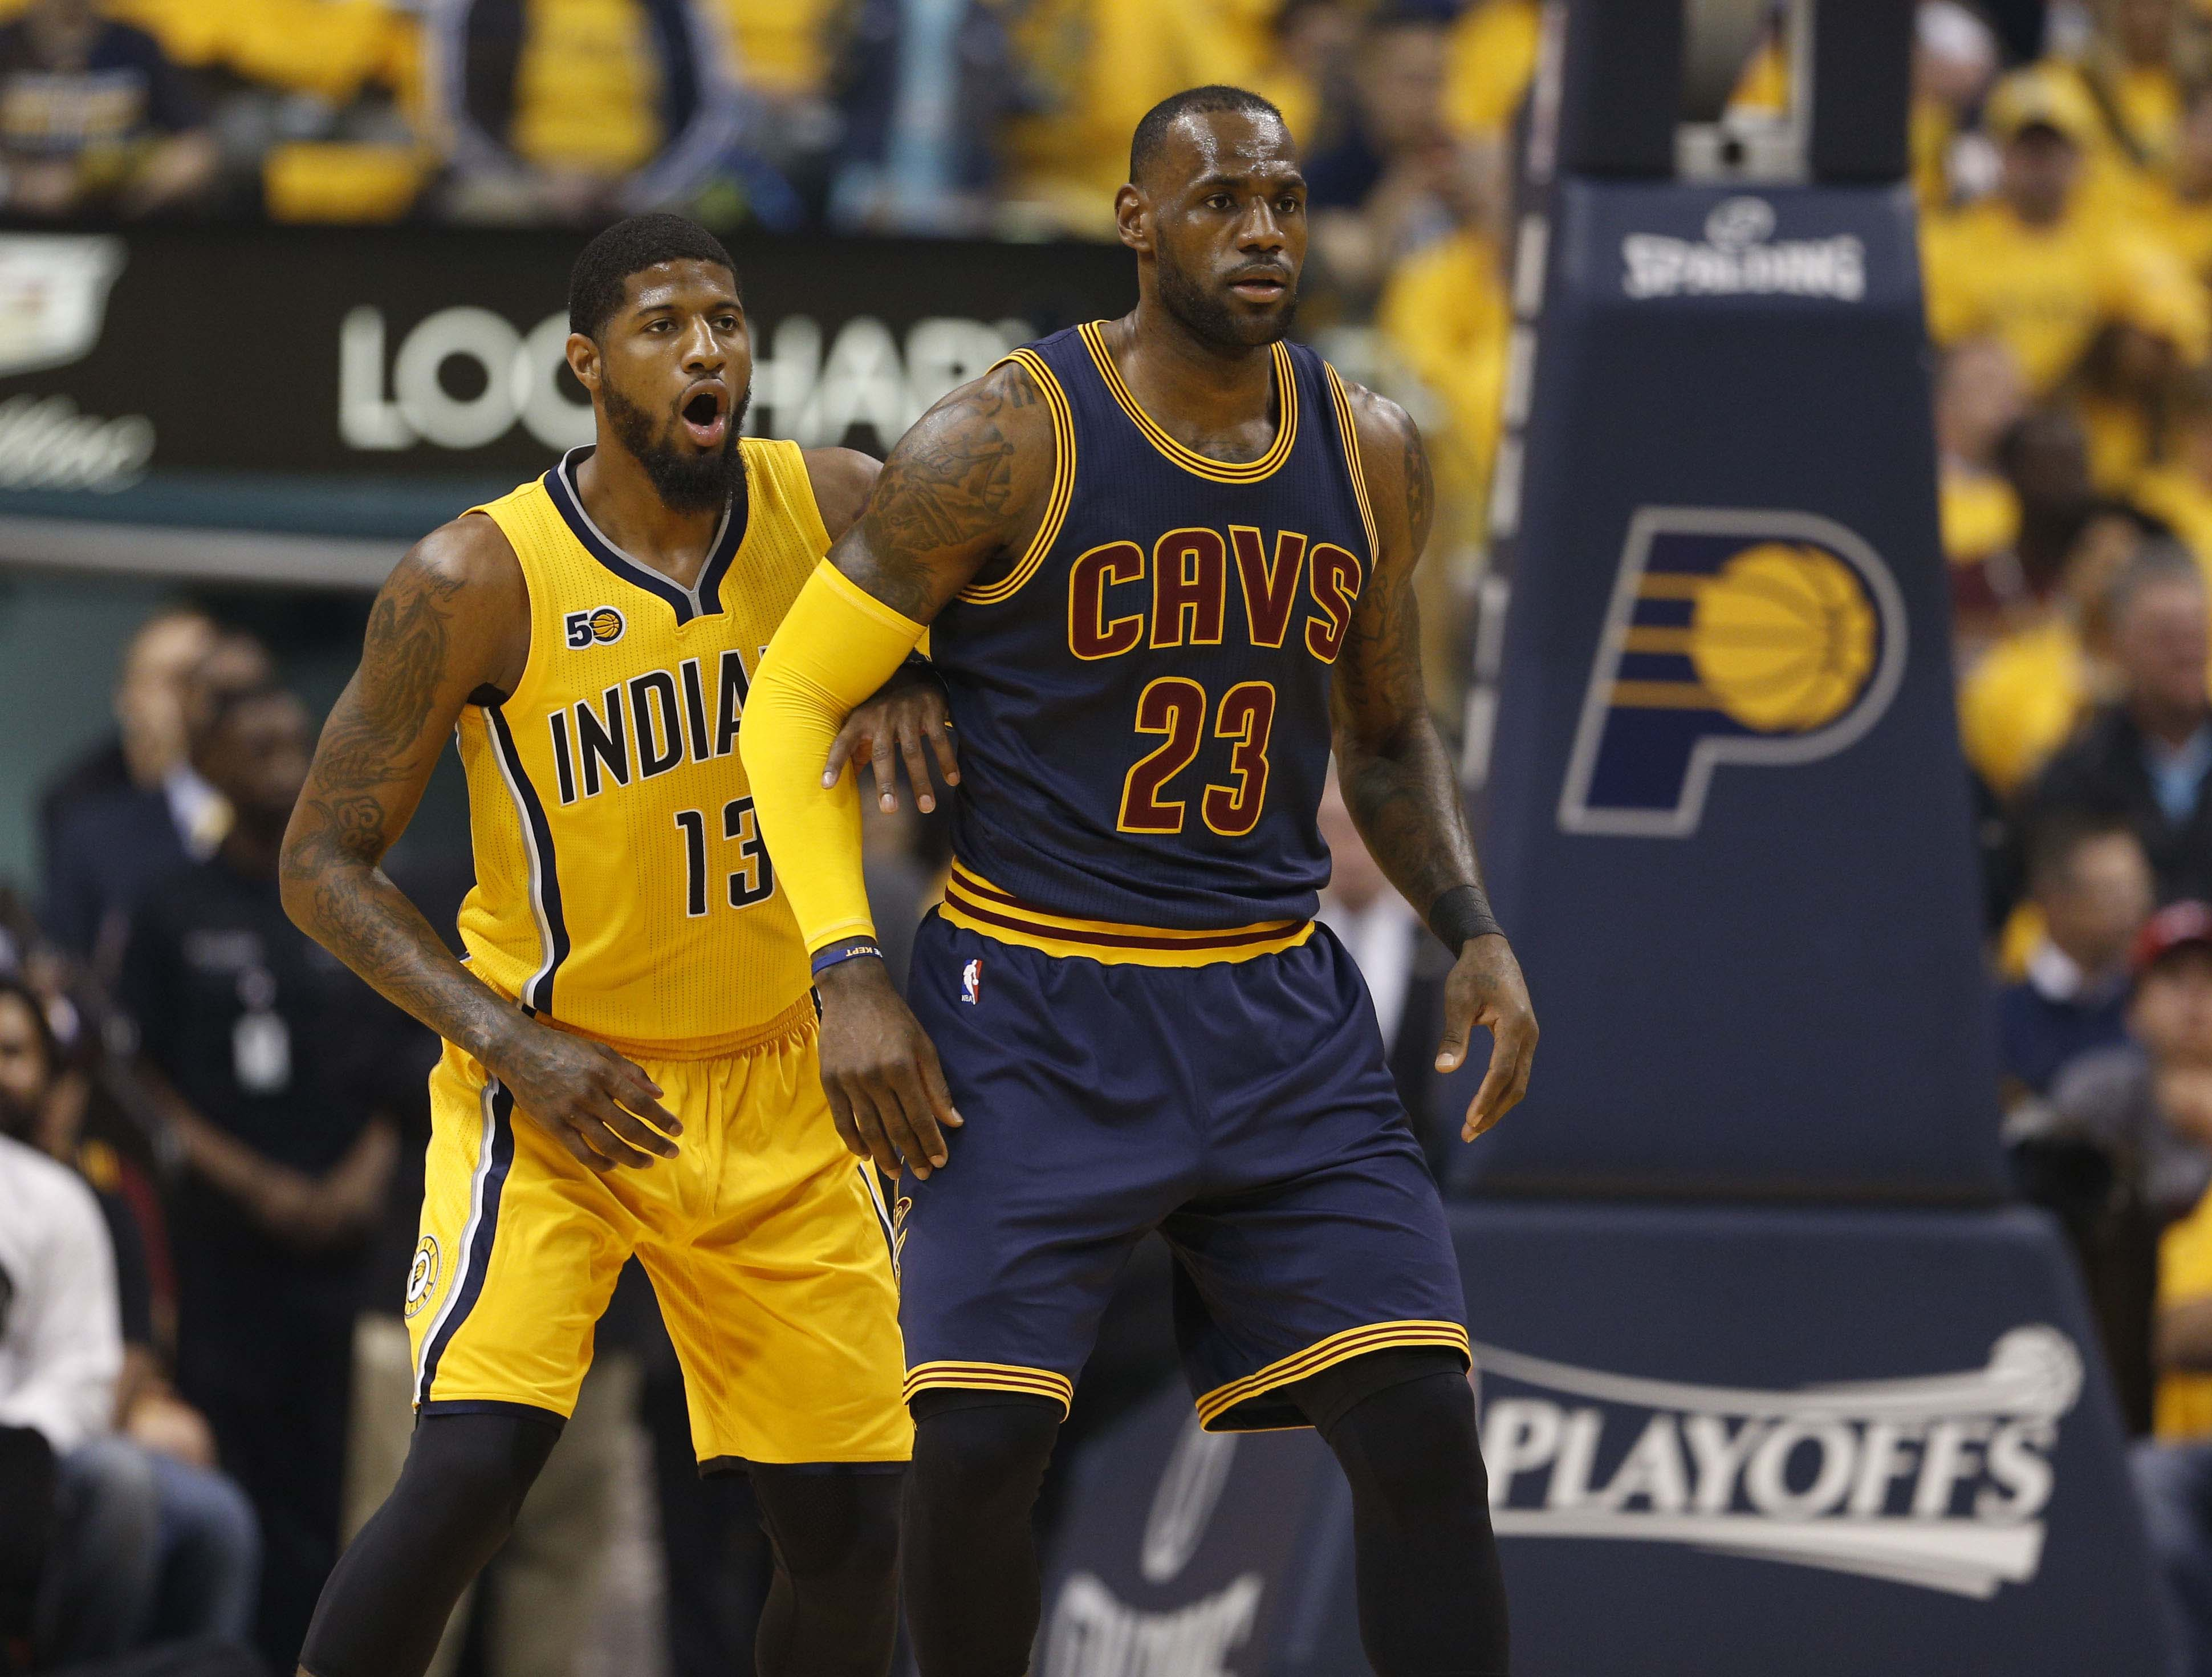 10022481-nba-playoffs-cleveland-cavaliers-at-indiana-pacers